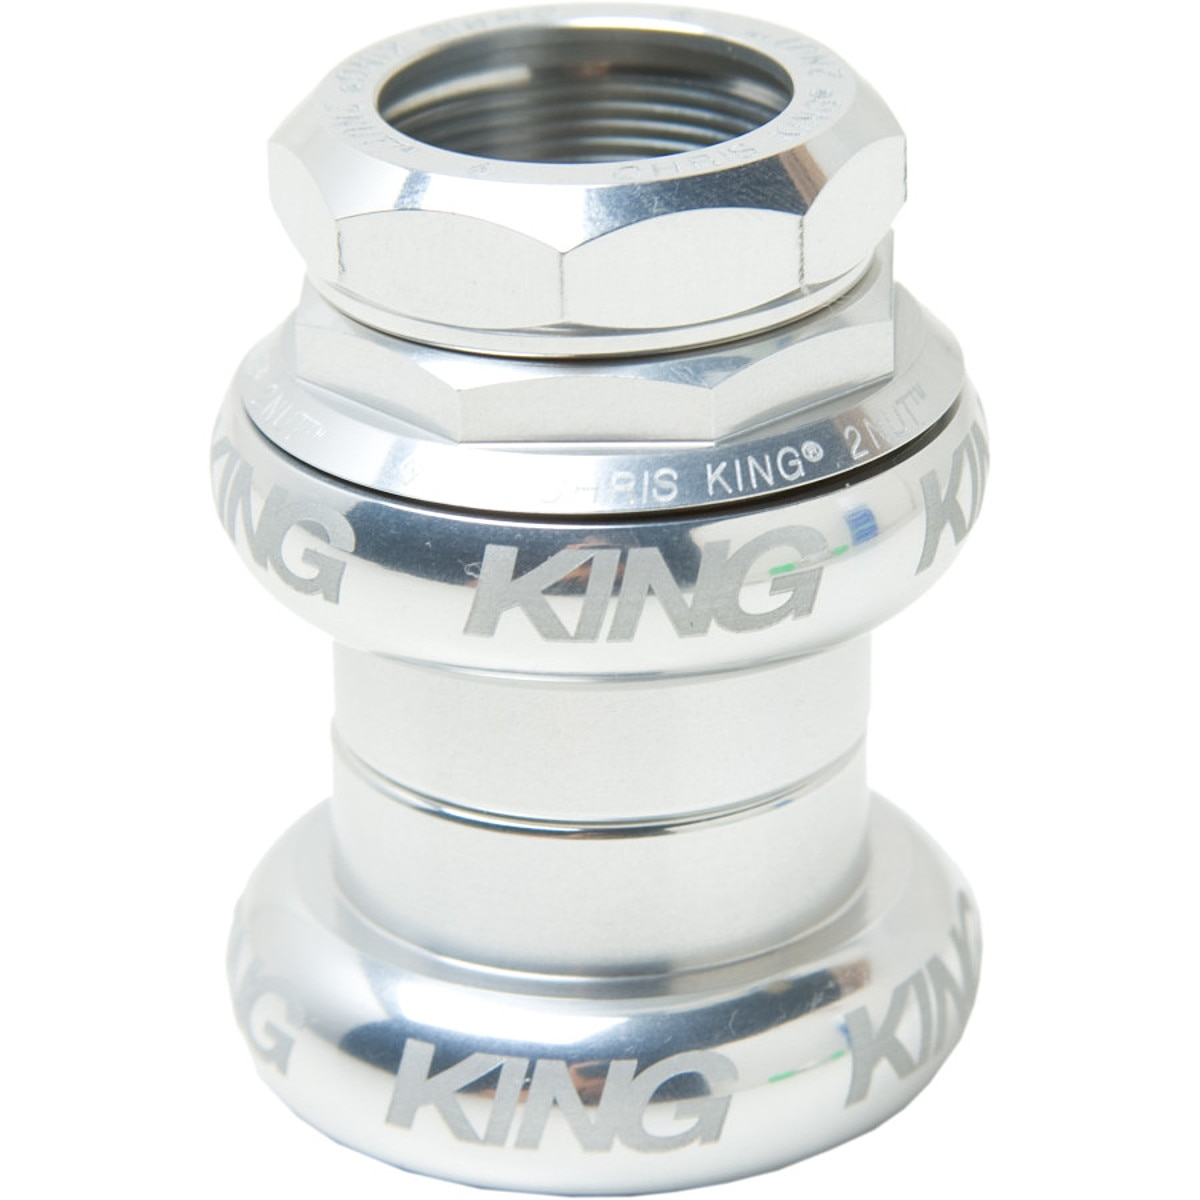 Chris King 2Nut Threadset Headset  1in Sotto Voce Silver 1in